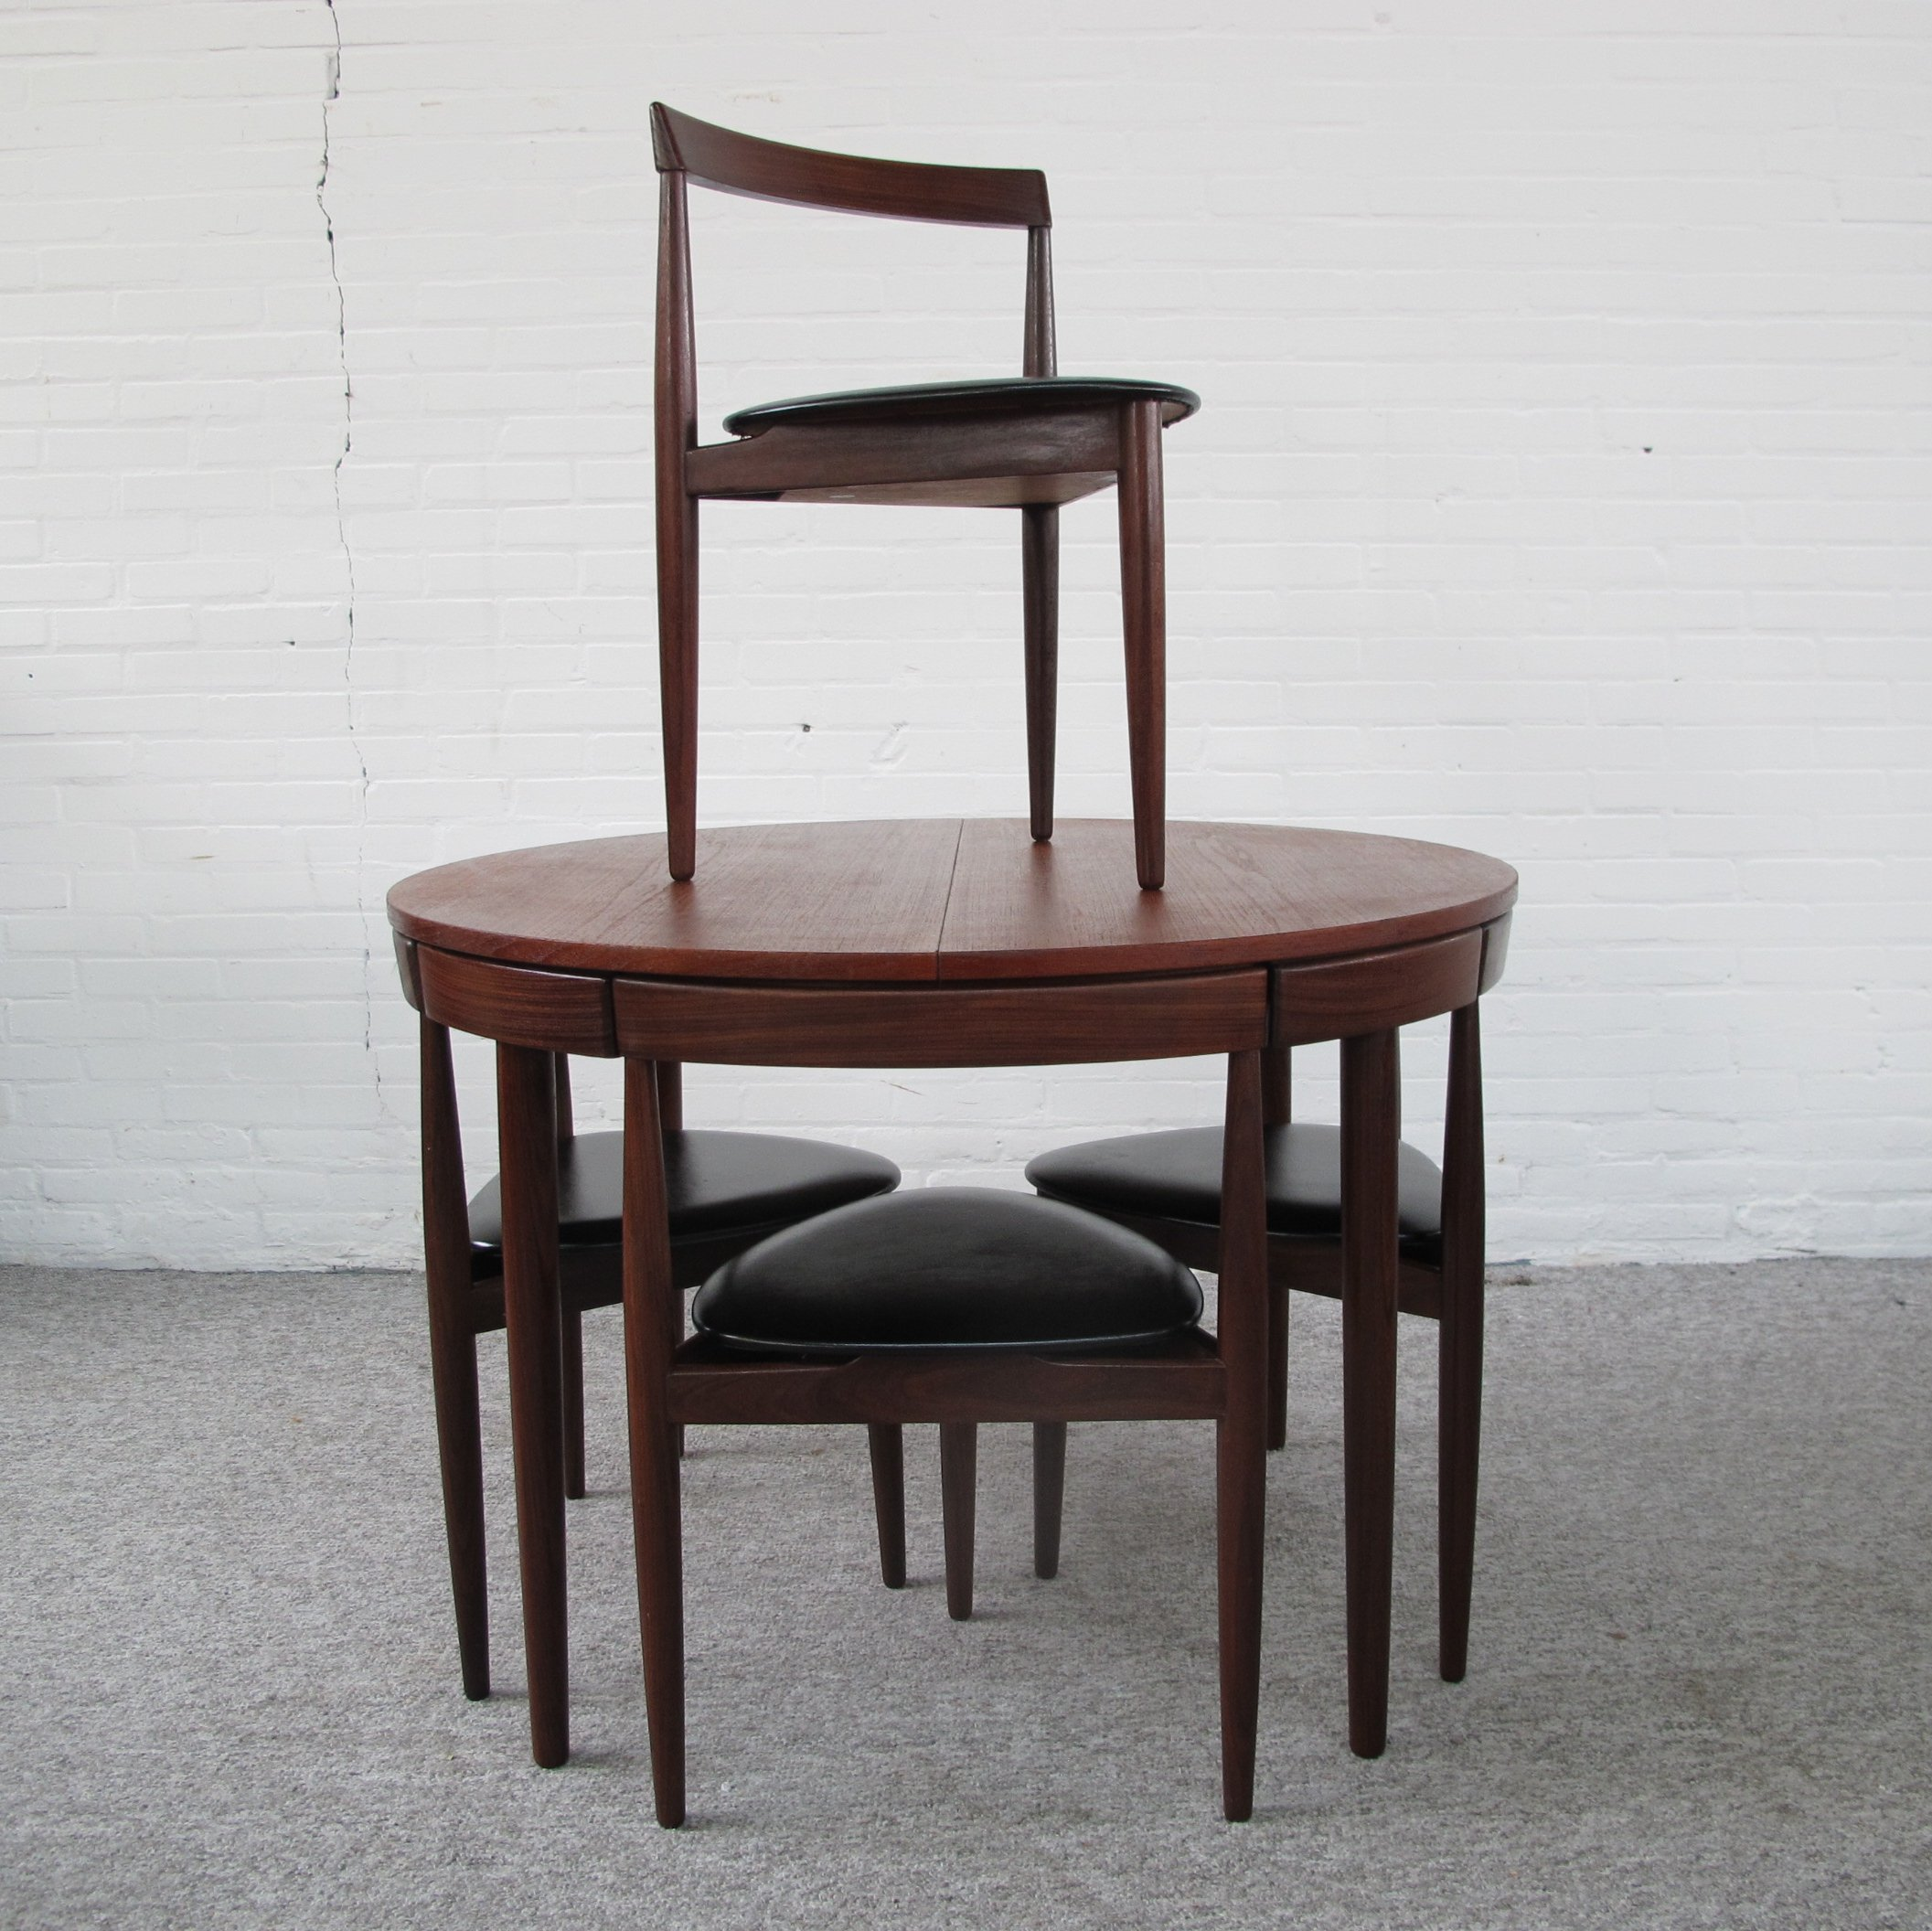 Roundette teak dining set by hans olsen for frem rojle 1960s